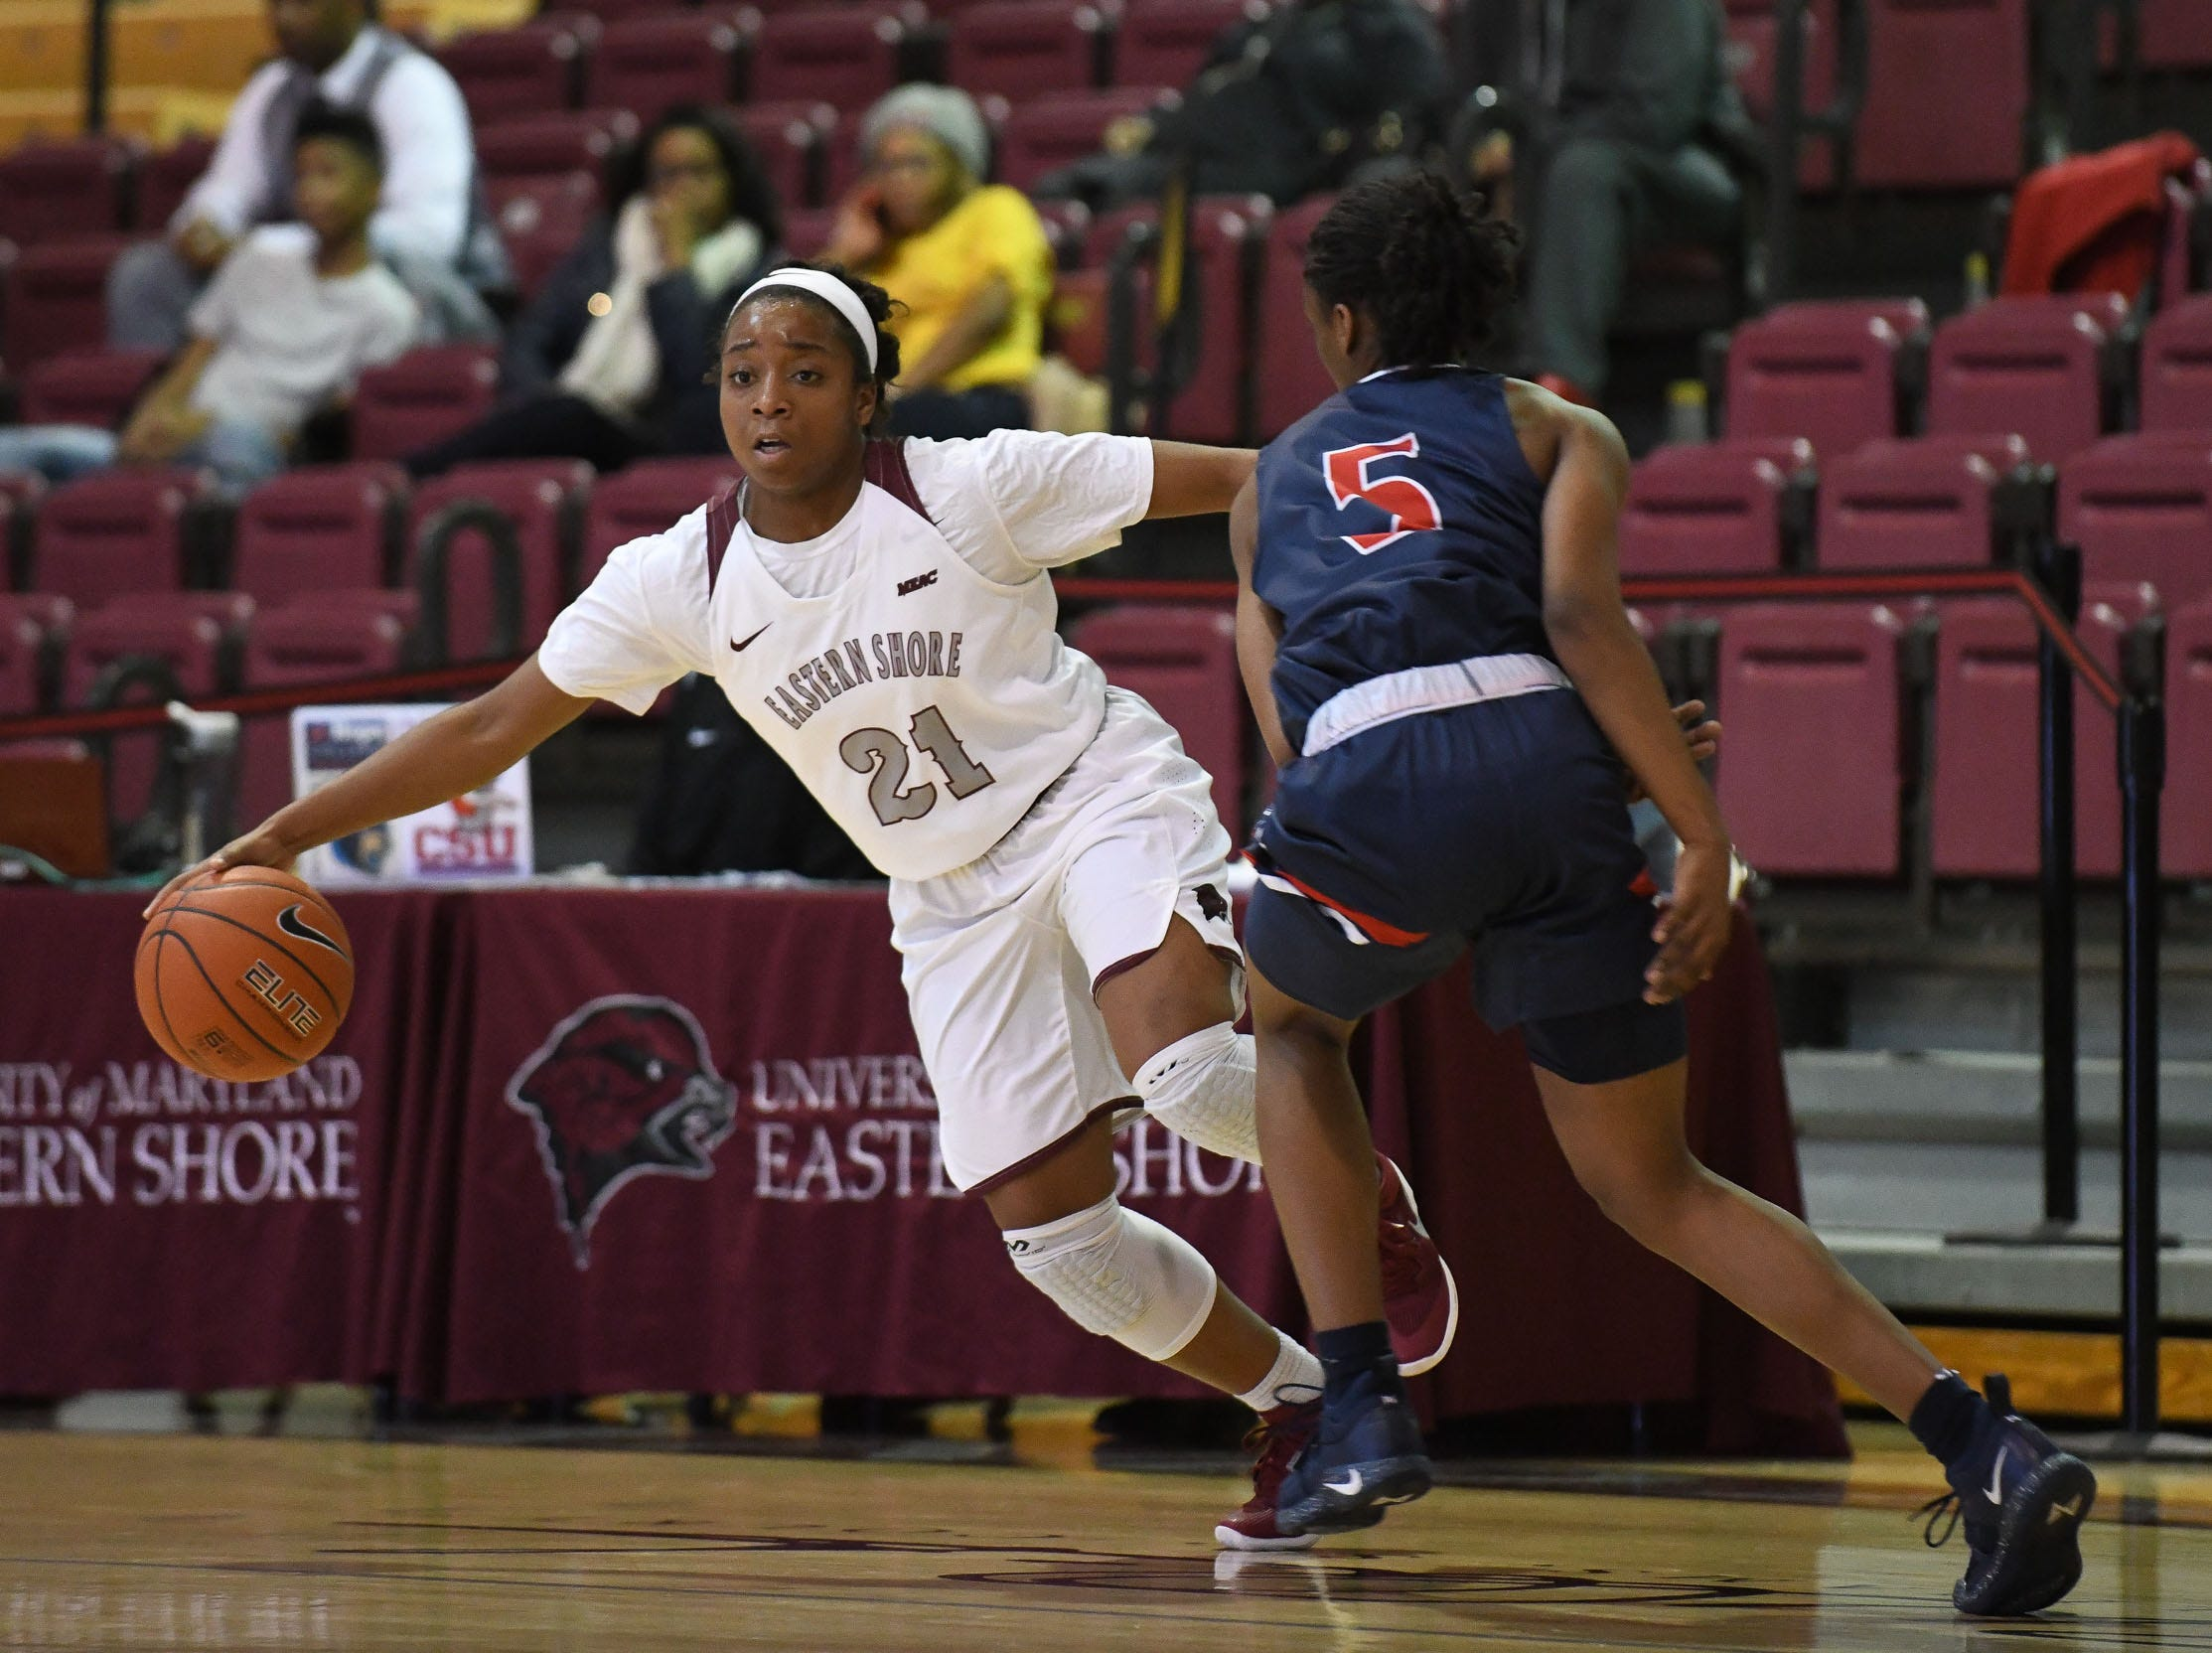 Maryland Eastern Shore's Ra'jean Martin during the game against Howard University on Monday, Jan 7, 2018.